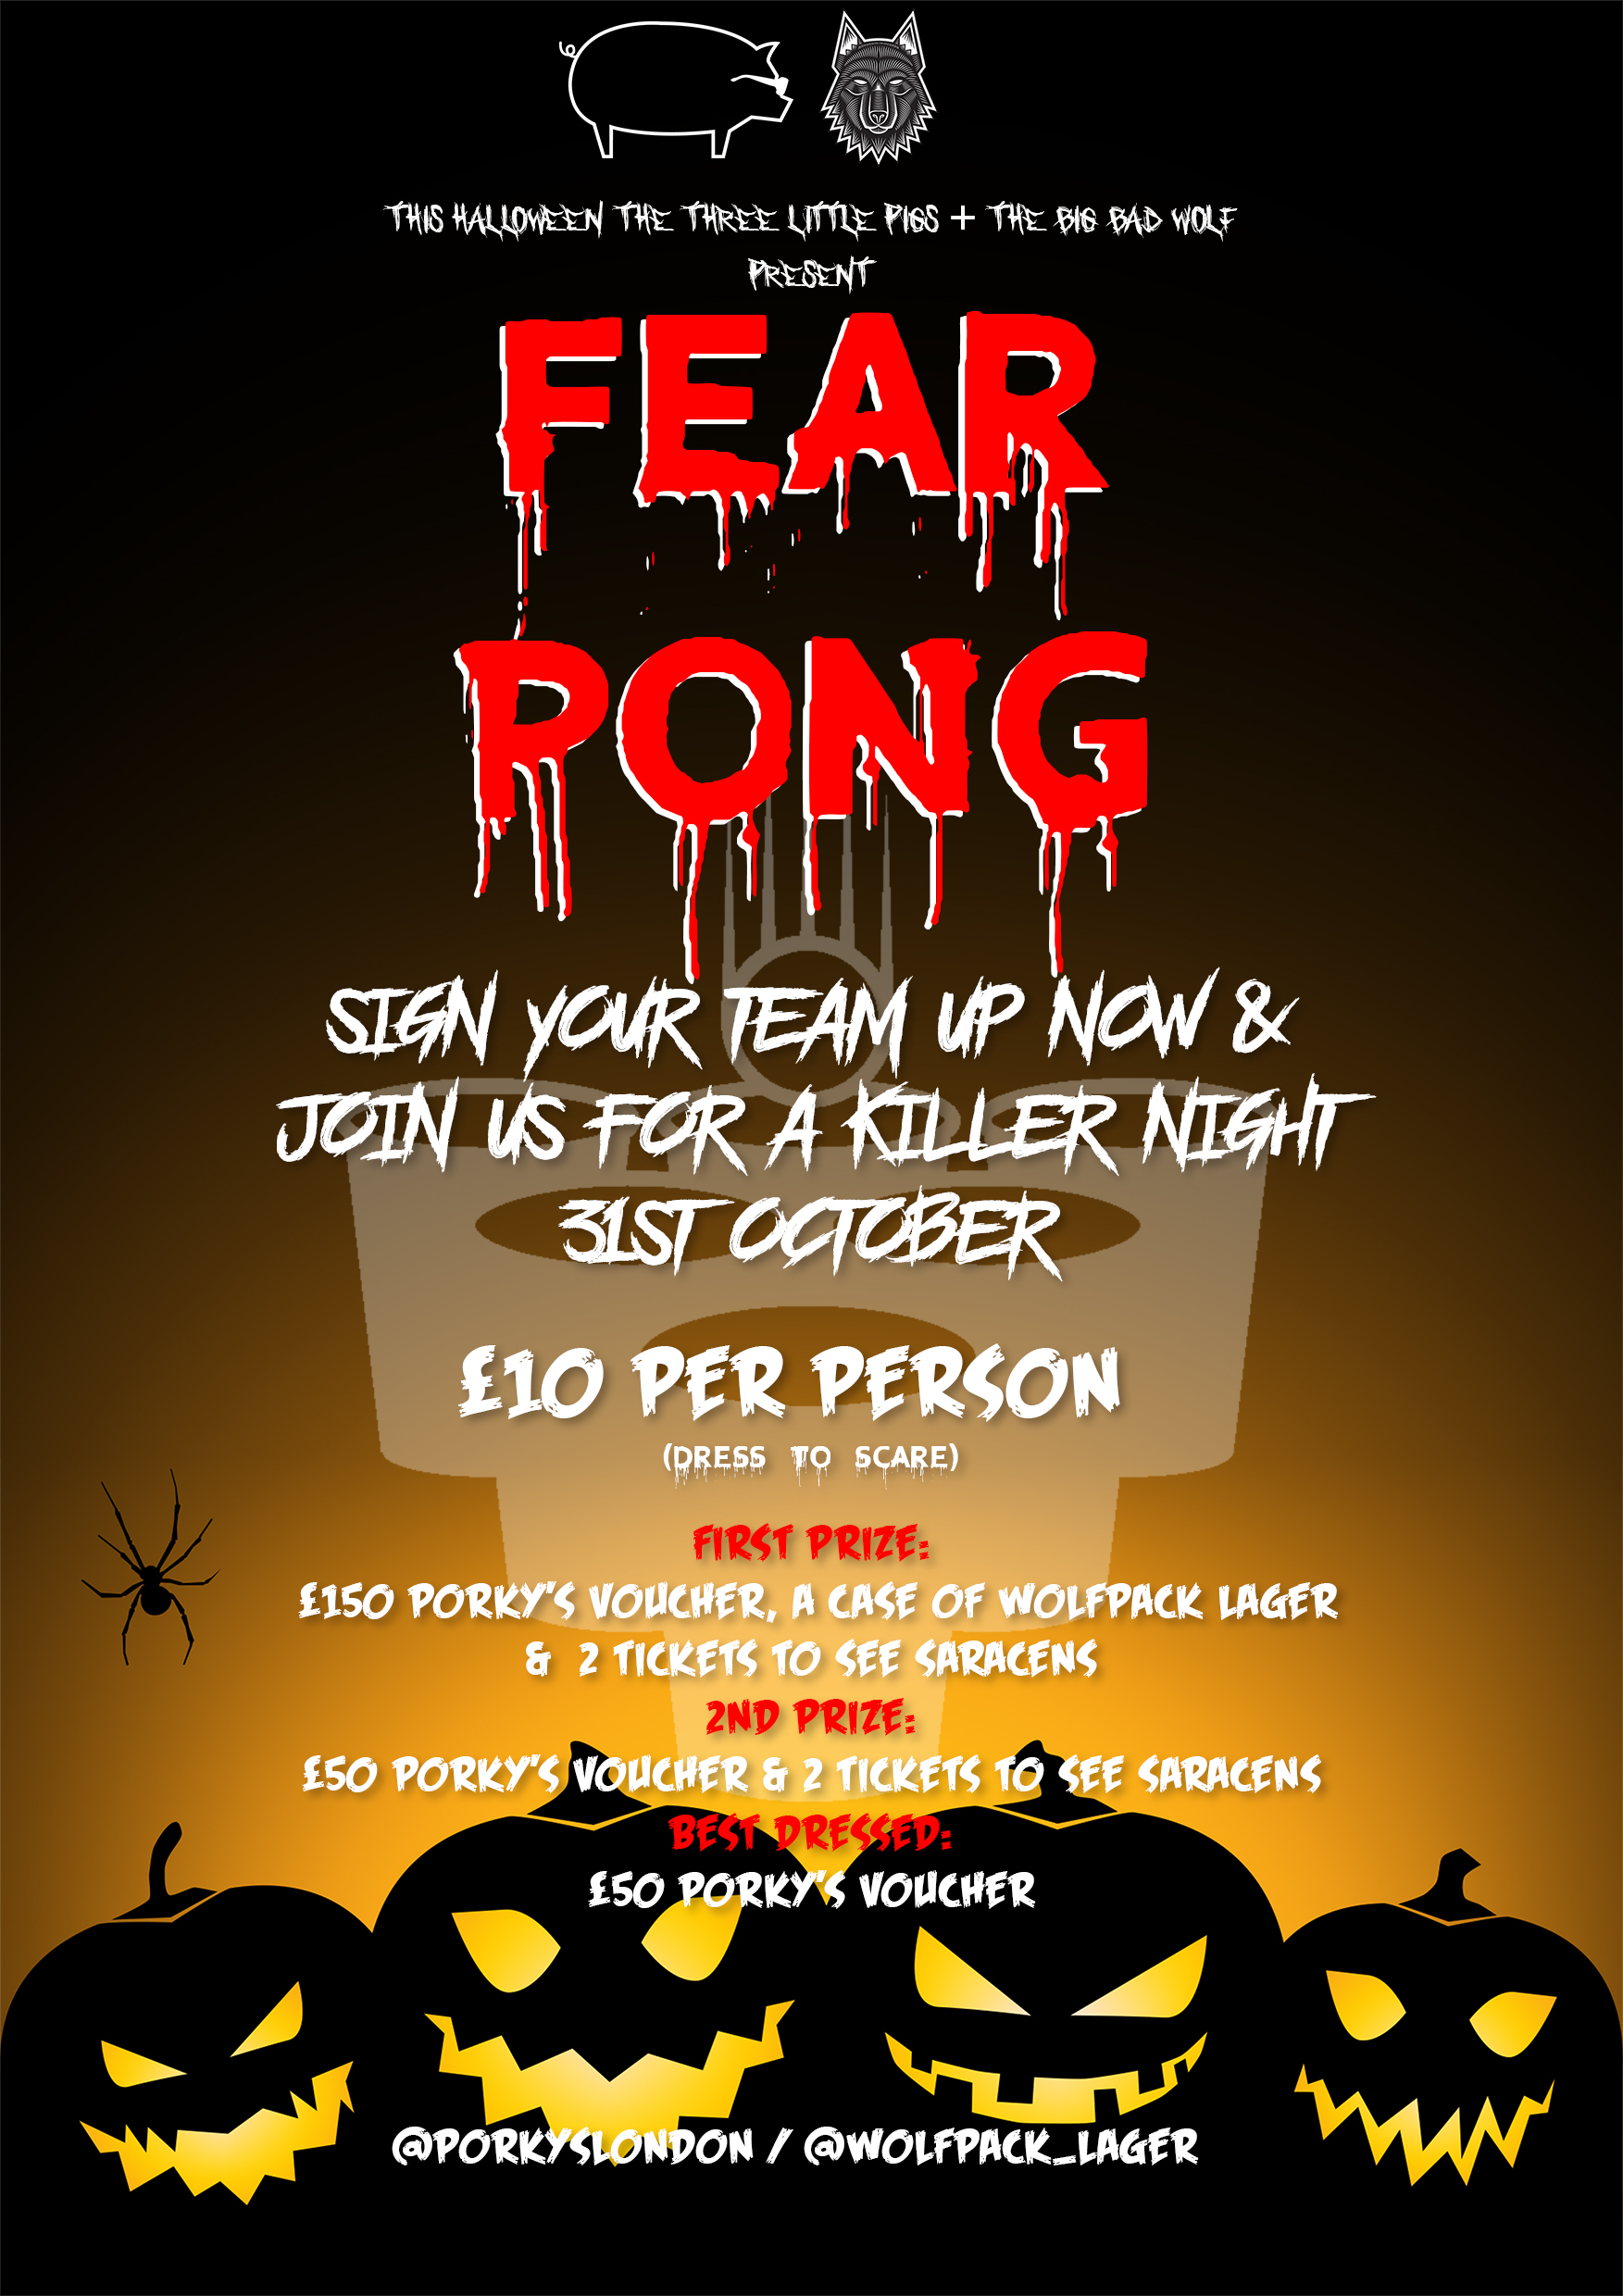 Porky's FearPong Tournament